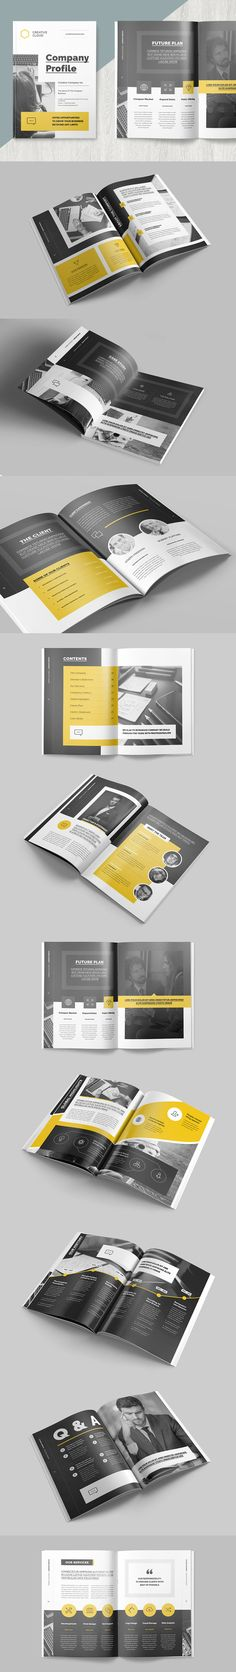 Clean and Professional Company Profile Brochure Template InDesign INDD